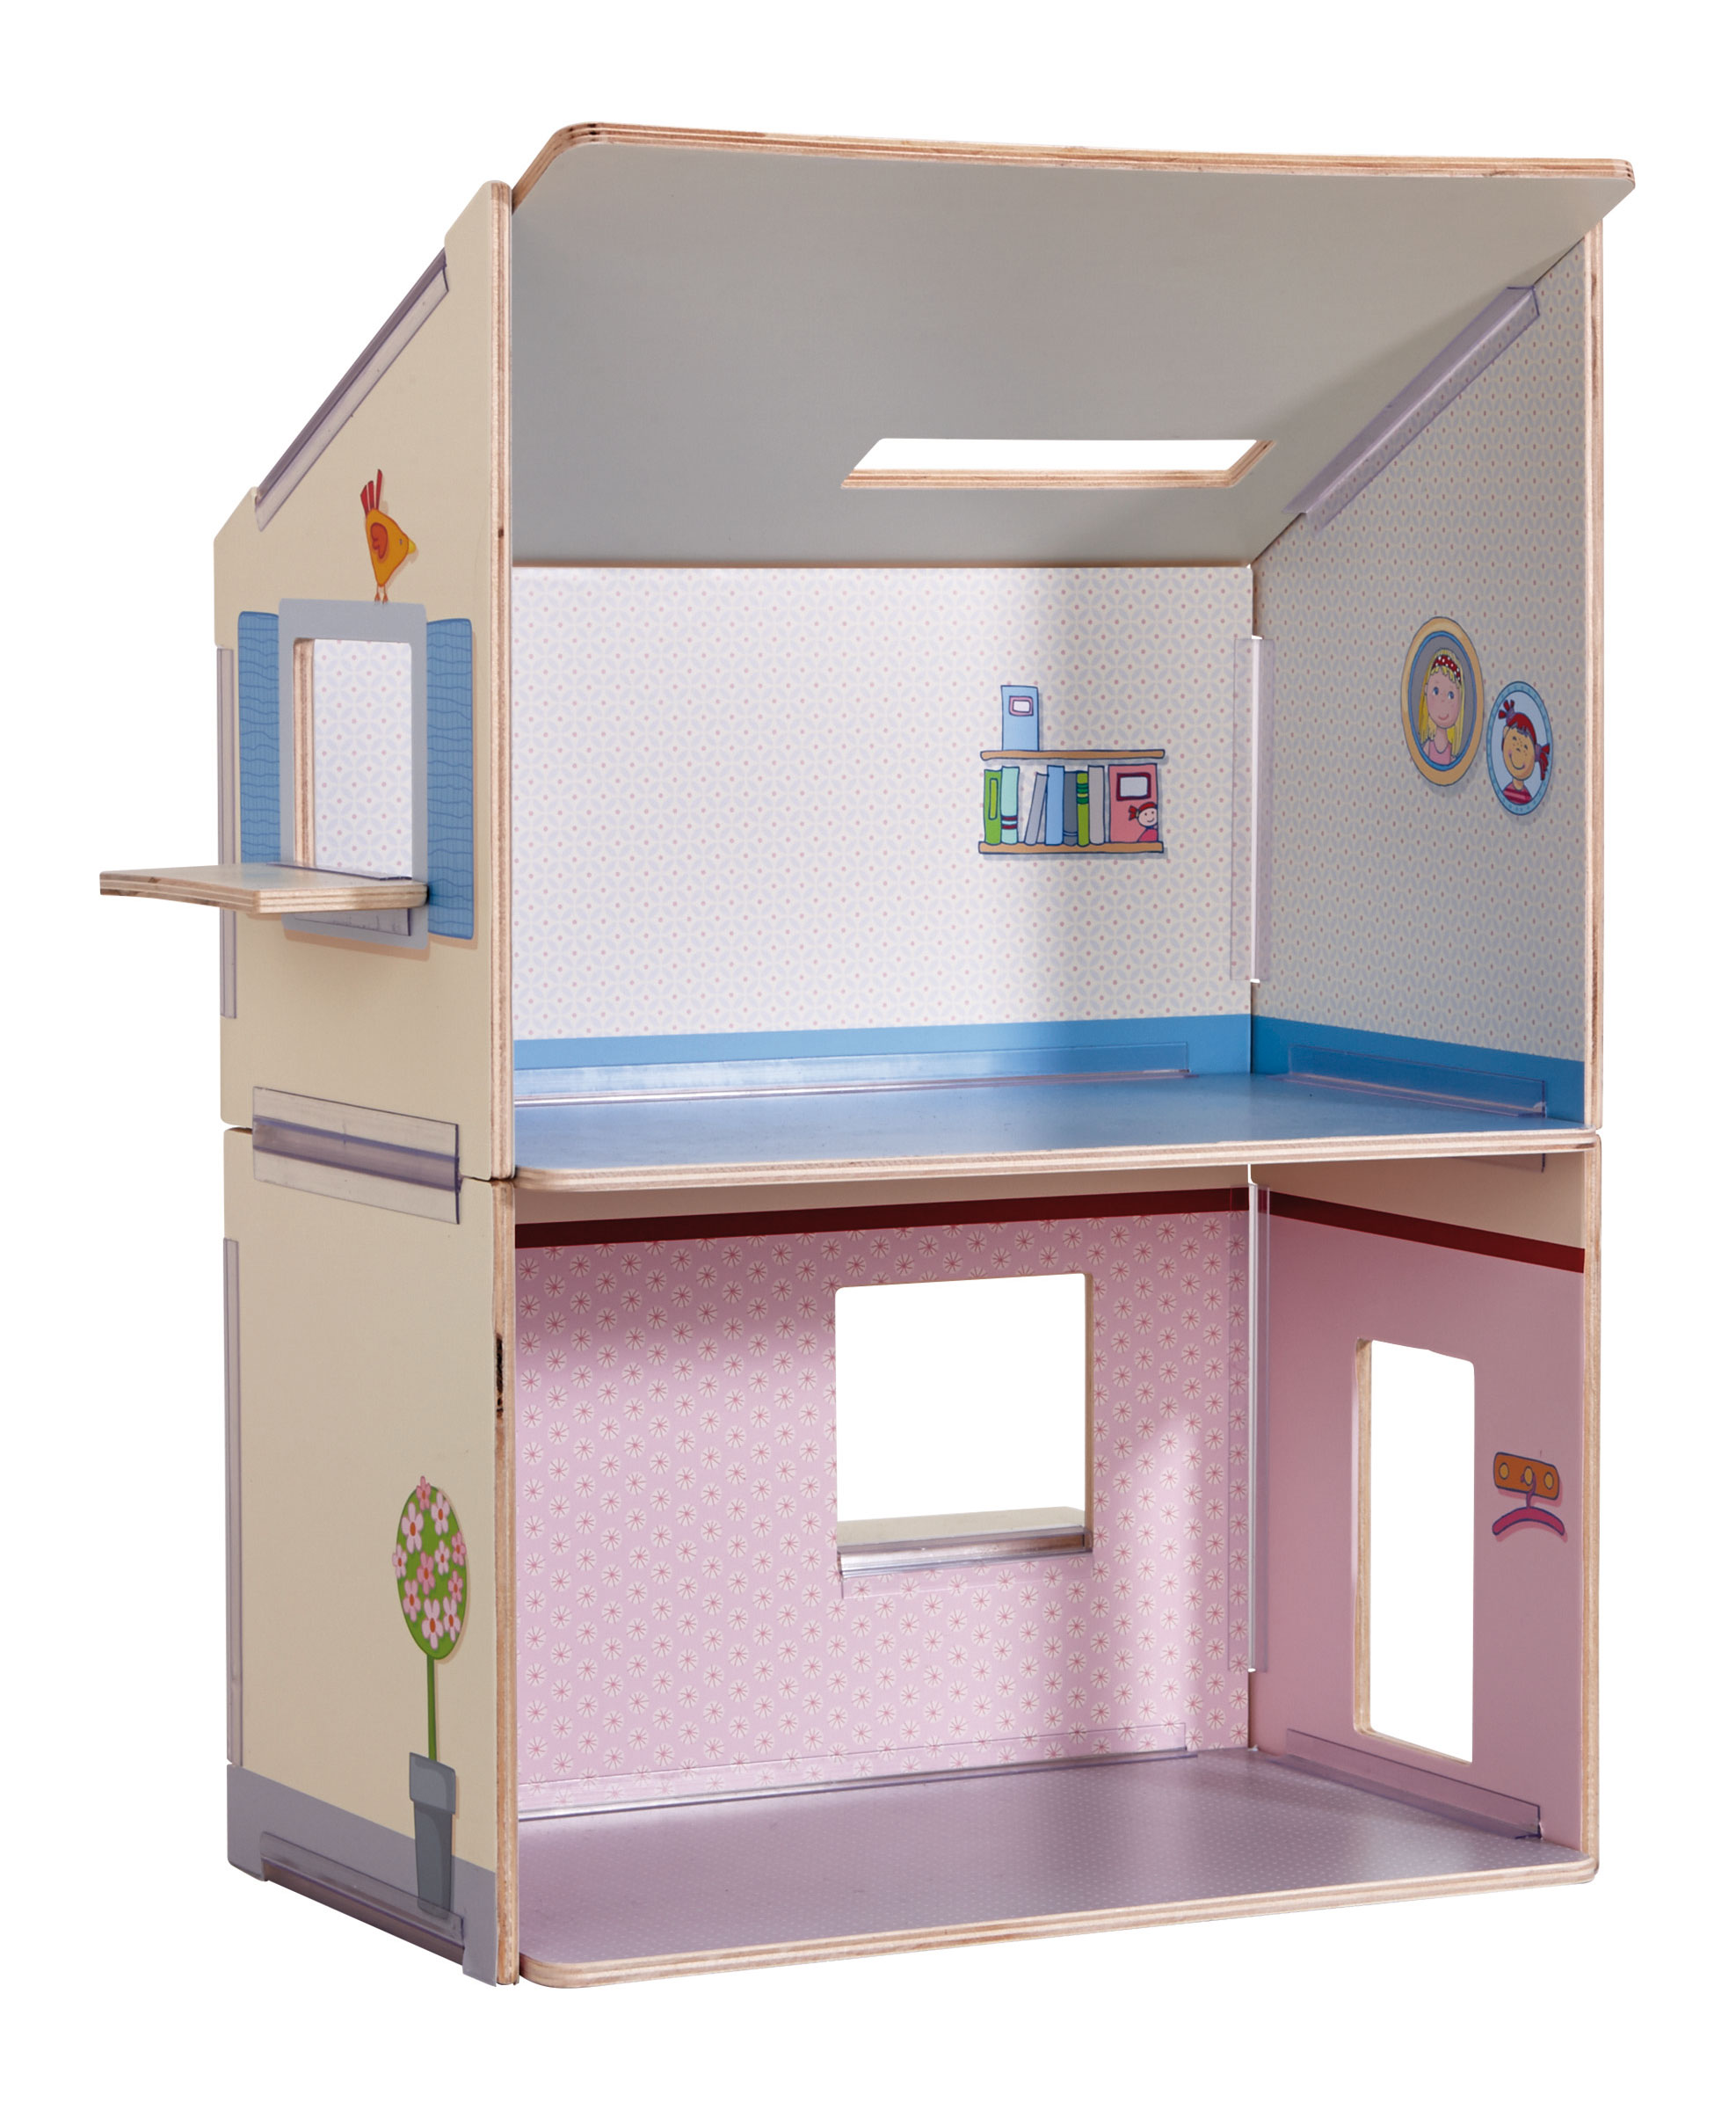 haba little friends puppenhaus traumhaus 302172 ebay. Black Bedroom Furniture Sets. Home Design Ideas